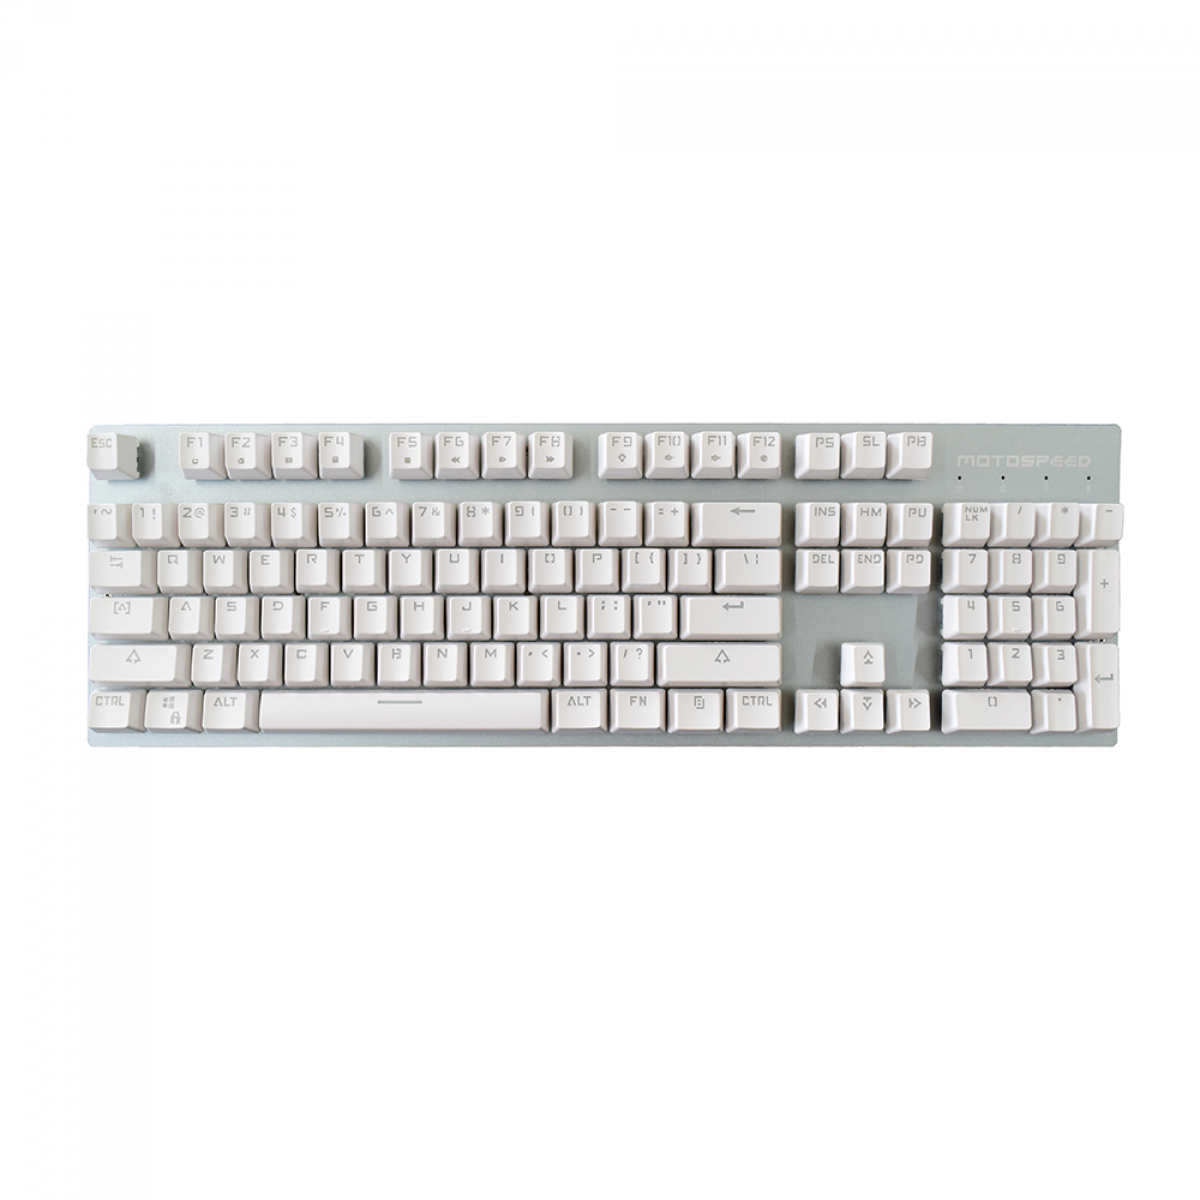 Teclado Mecanico MotoSpeed GK89 White, Wireless, Switch Red, LED Blue, FMSTC0033VEM